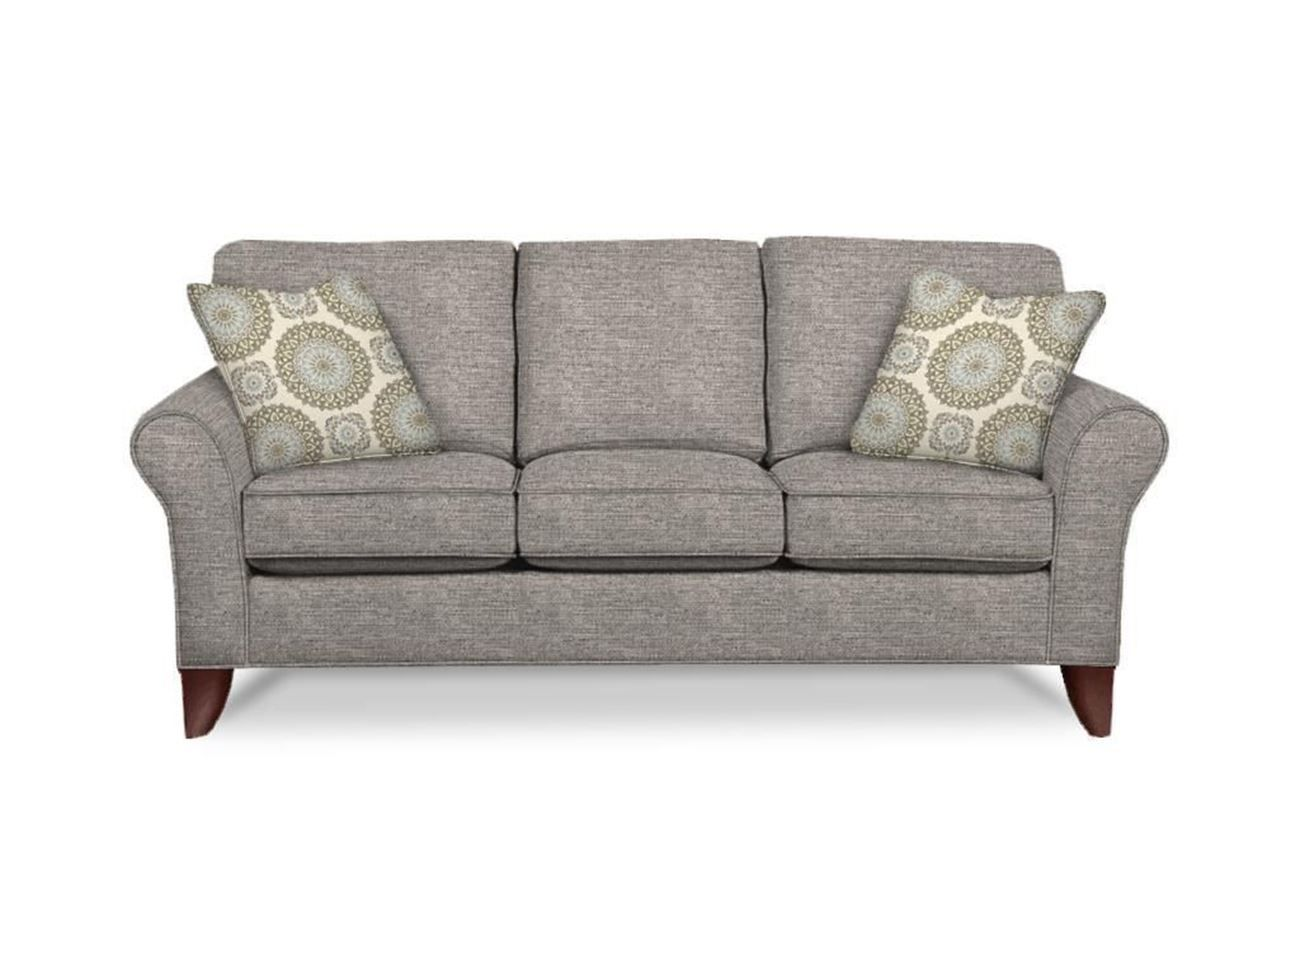 Shop The Sophisticated Townhouse Sofa By Craftmaster Also Available Are The Matching Loveseat Chair And Ottoman Sofa Sofa Inspiration Leather Couch Sectional